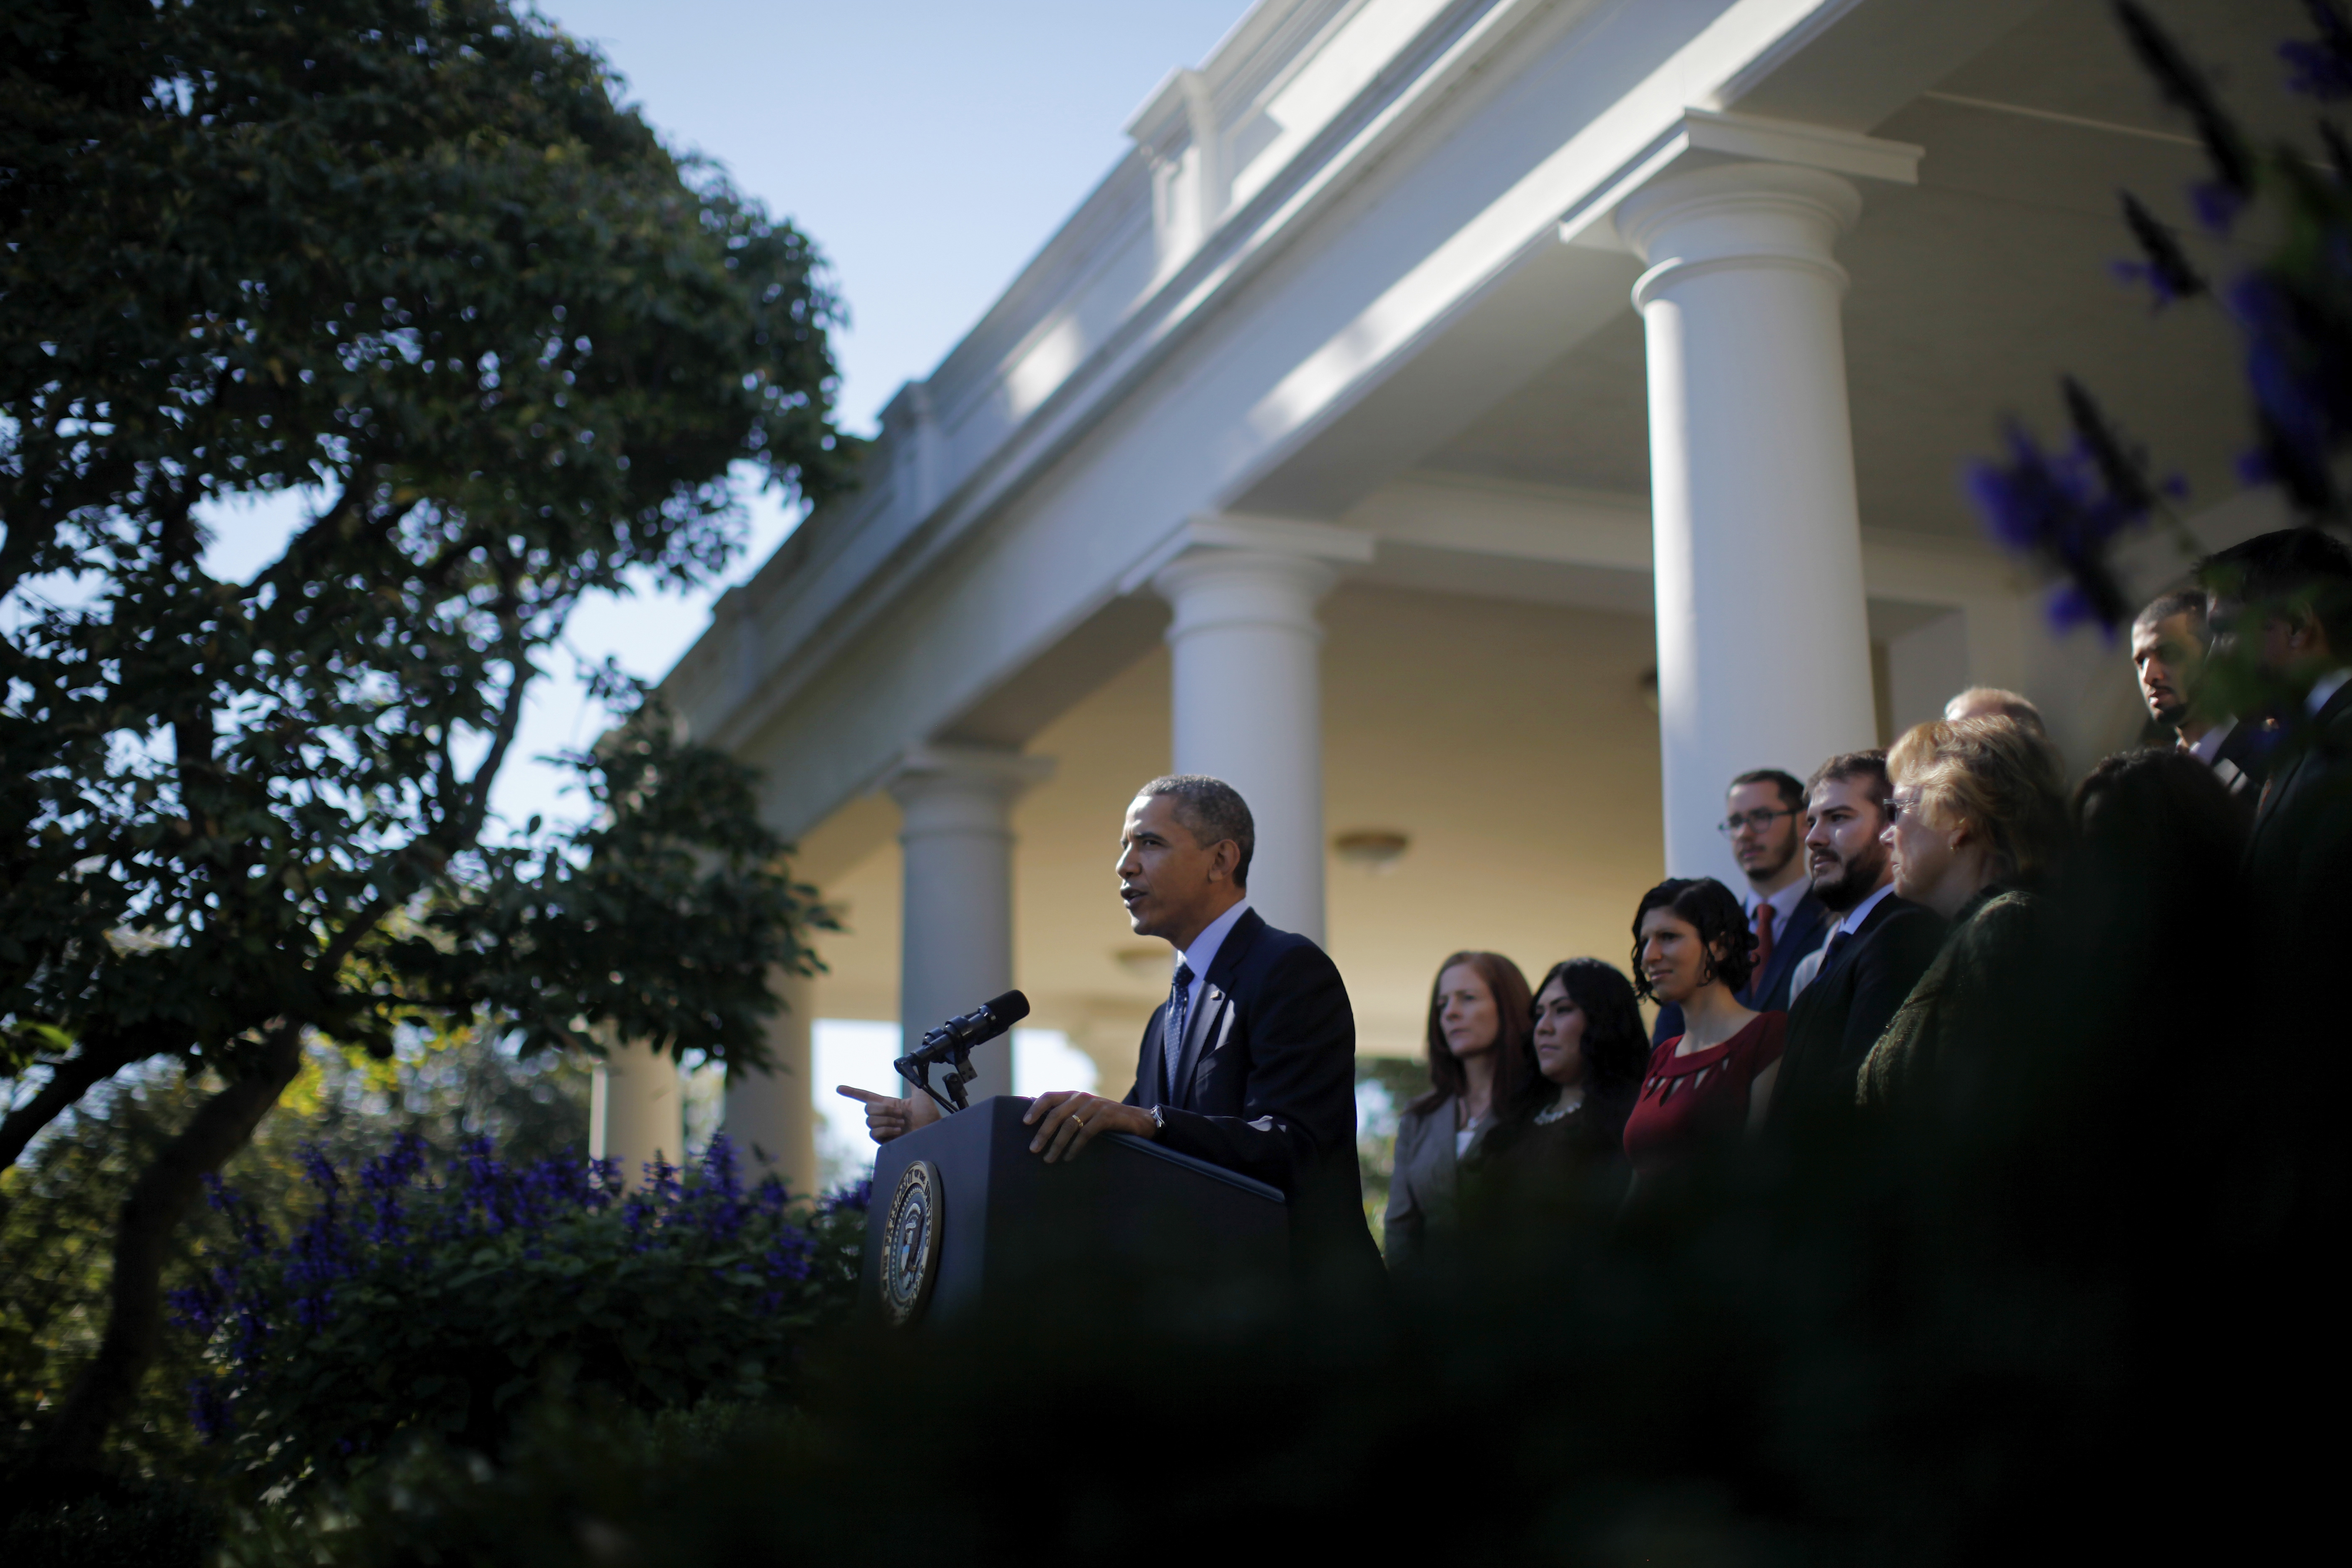 At a Rose Garden event Monday, President Obama stated the obvious: that the problems involved in launch of the government's health care website are unacceptable. (AP photo)